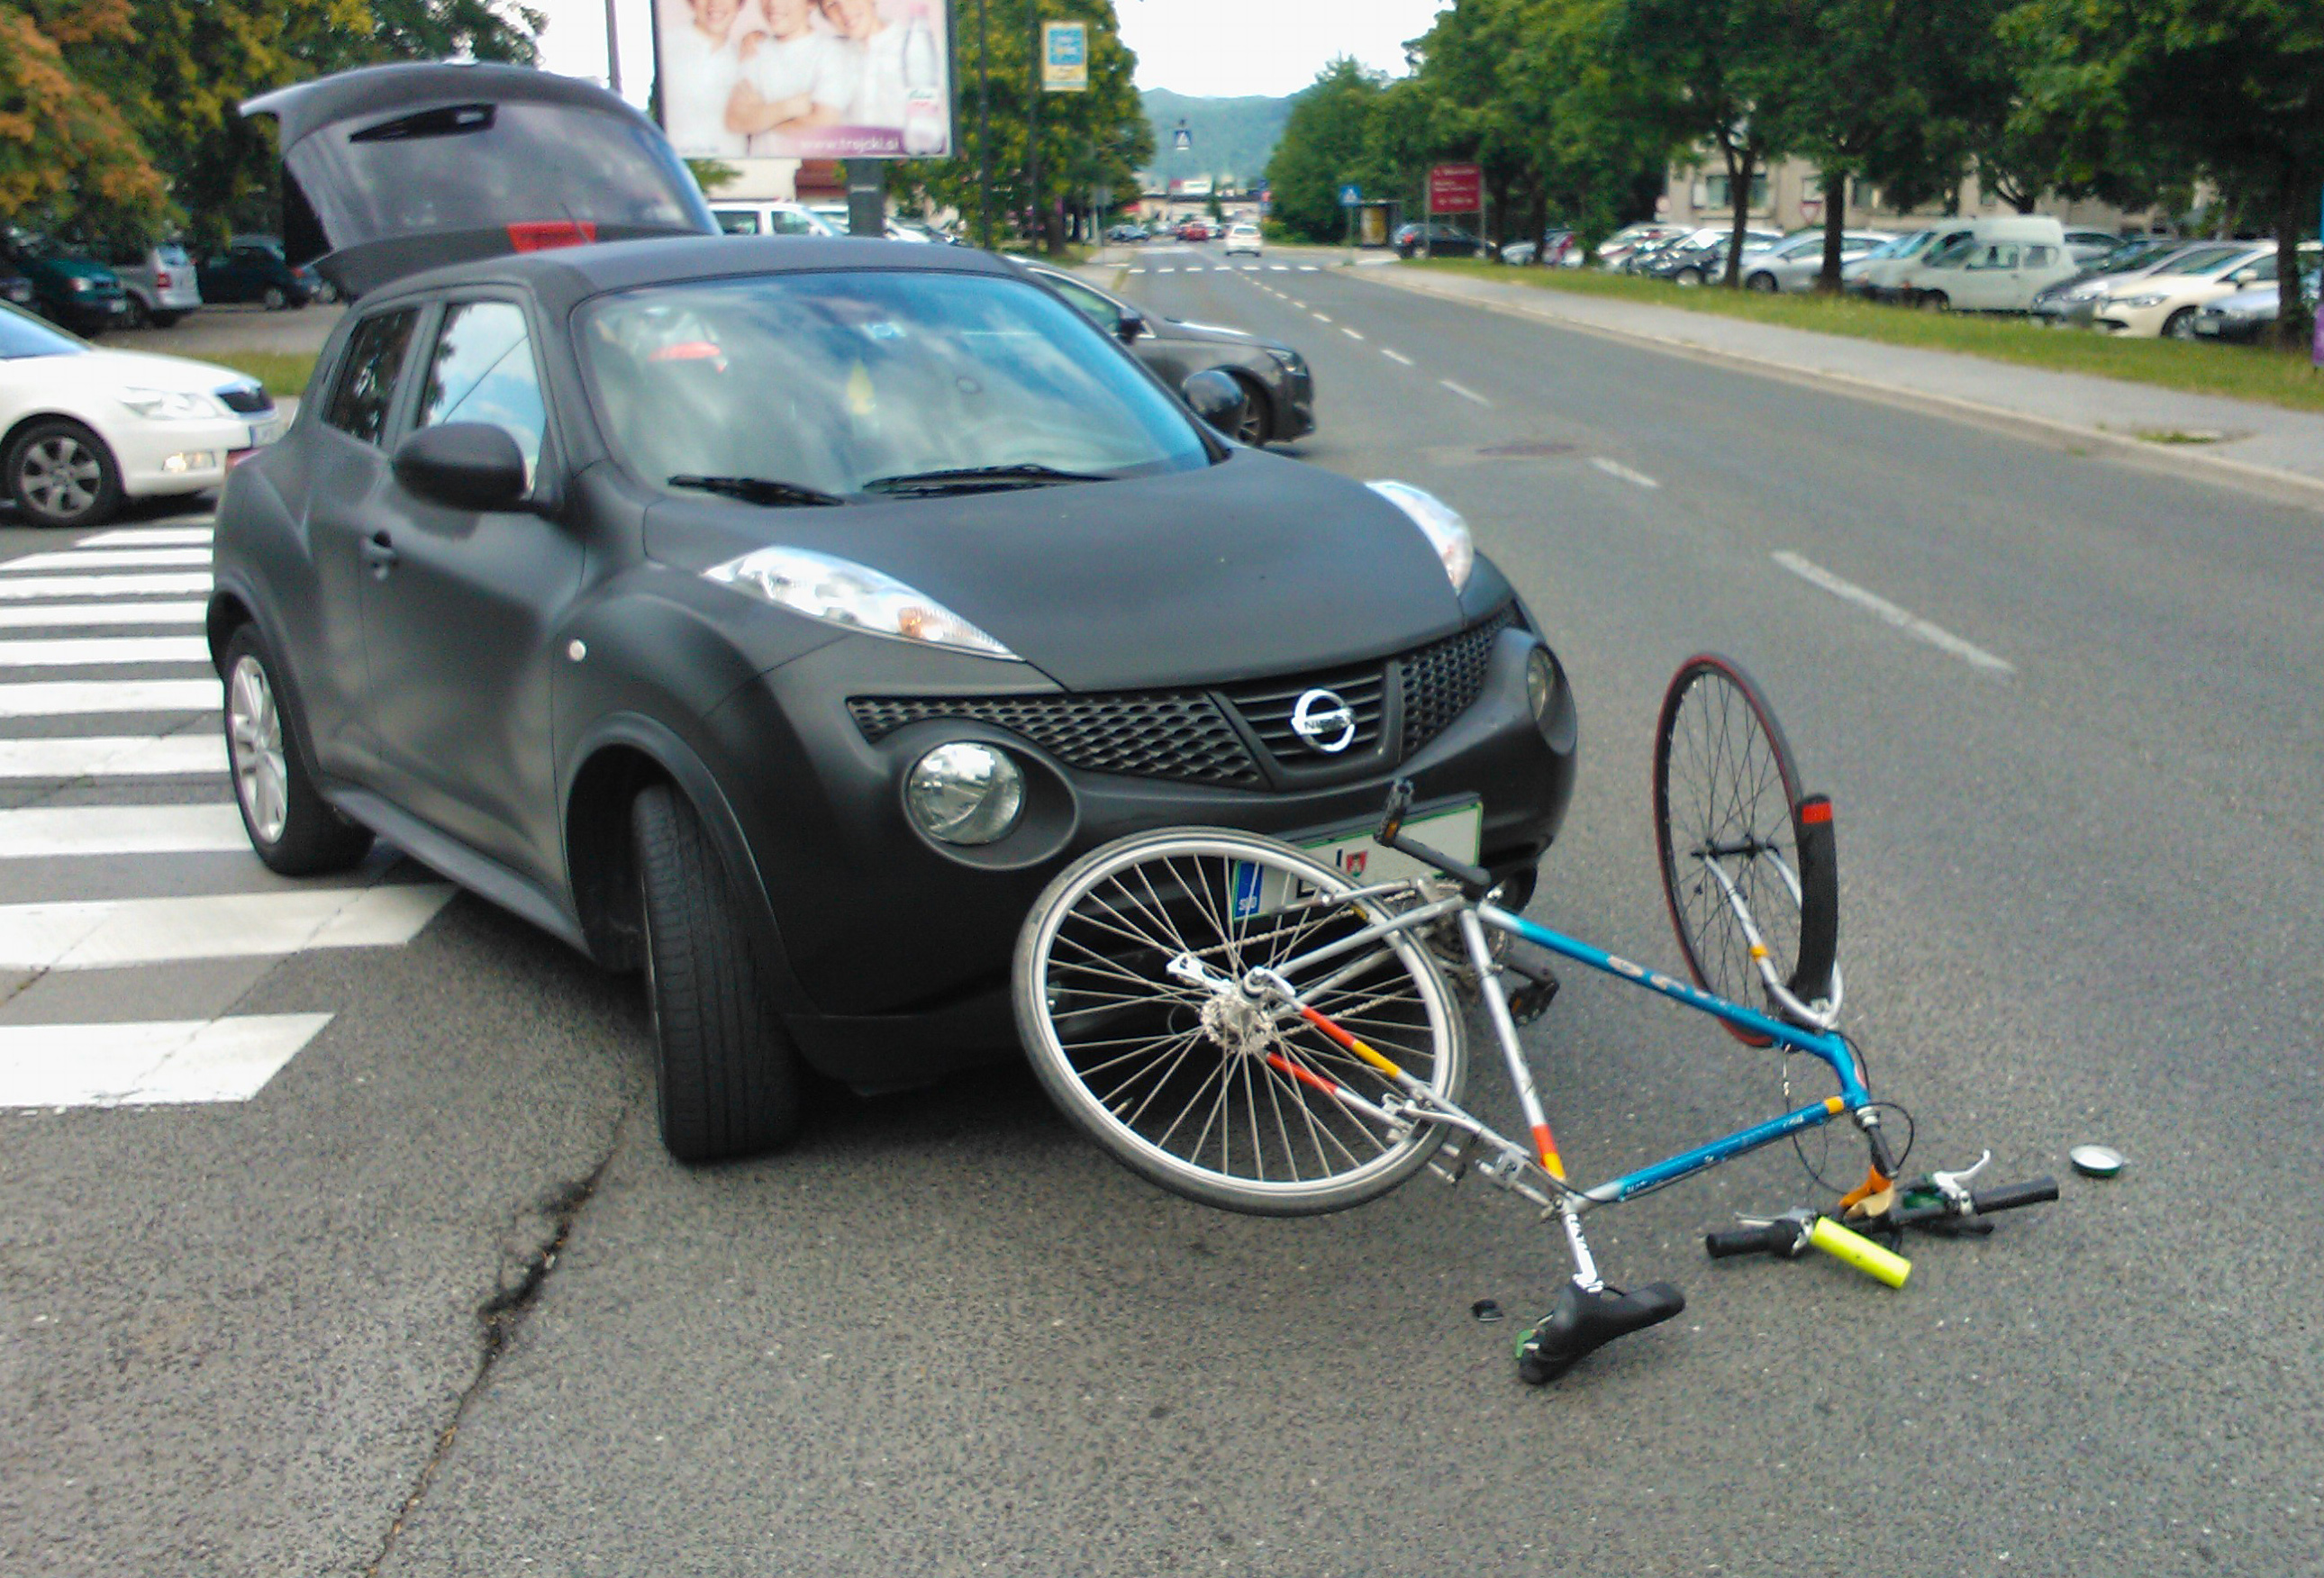 010 Essay Example Bicycle Car Accident On Road Imposing Wikipedia Full